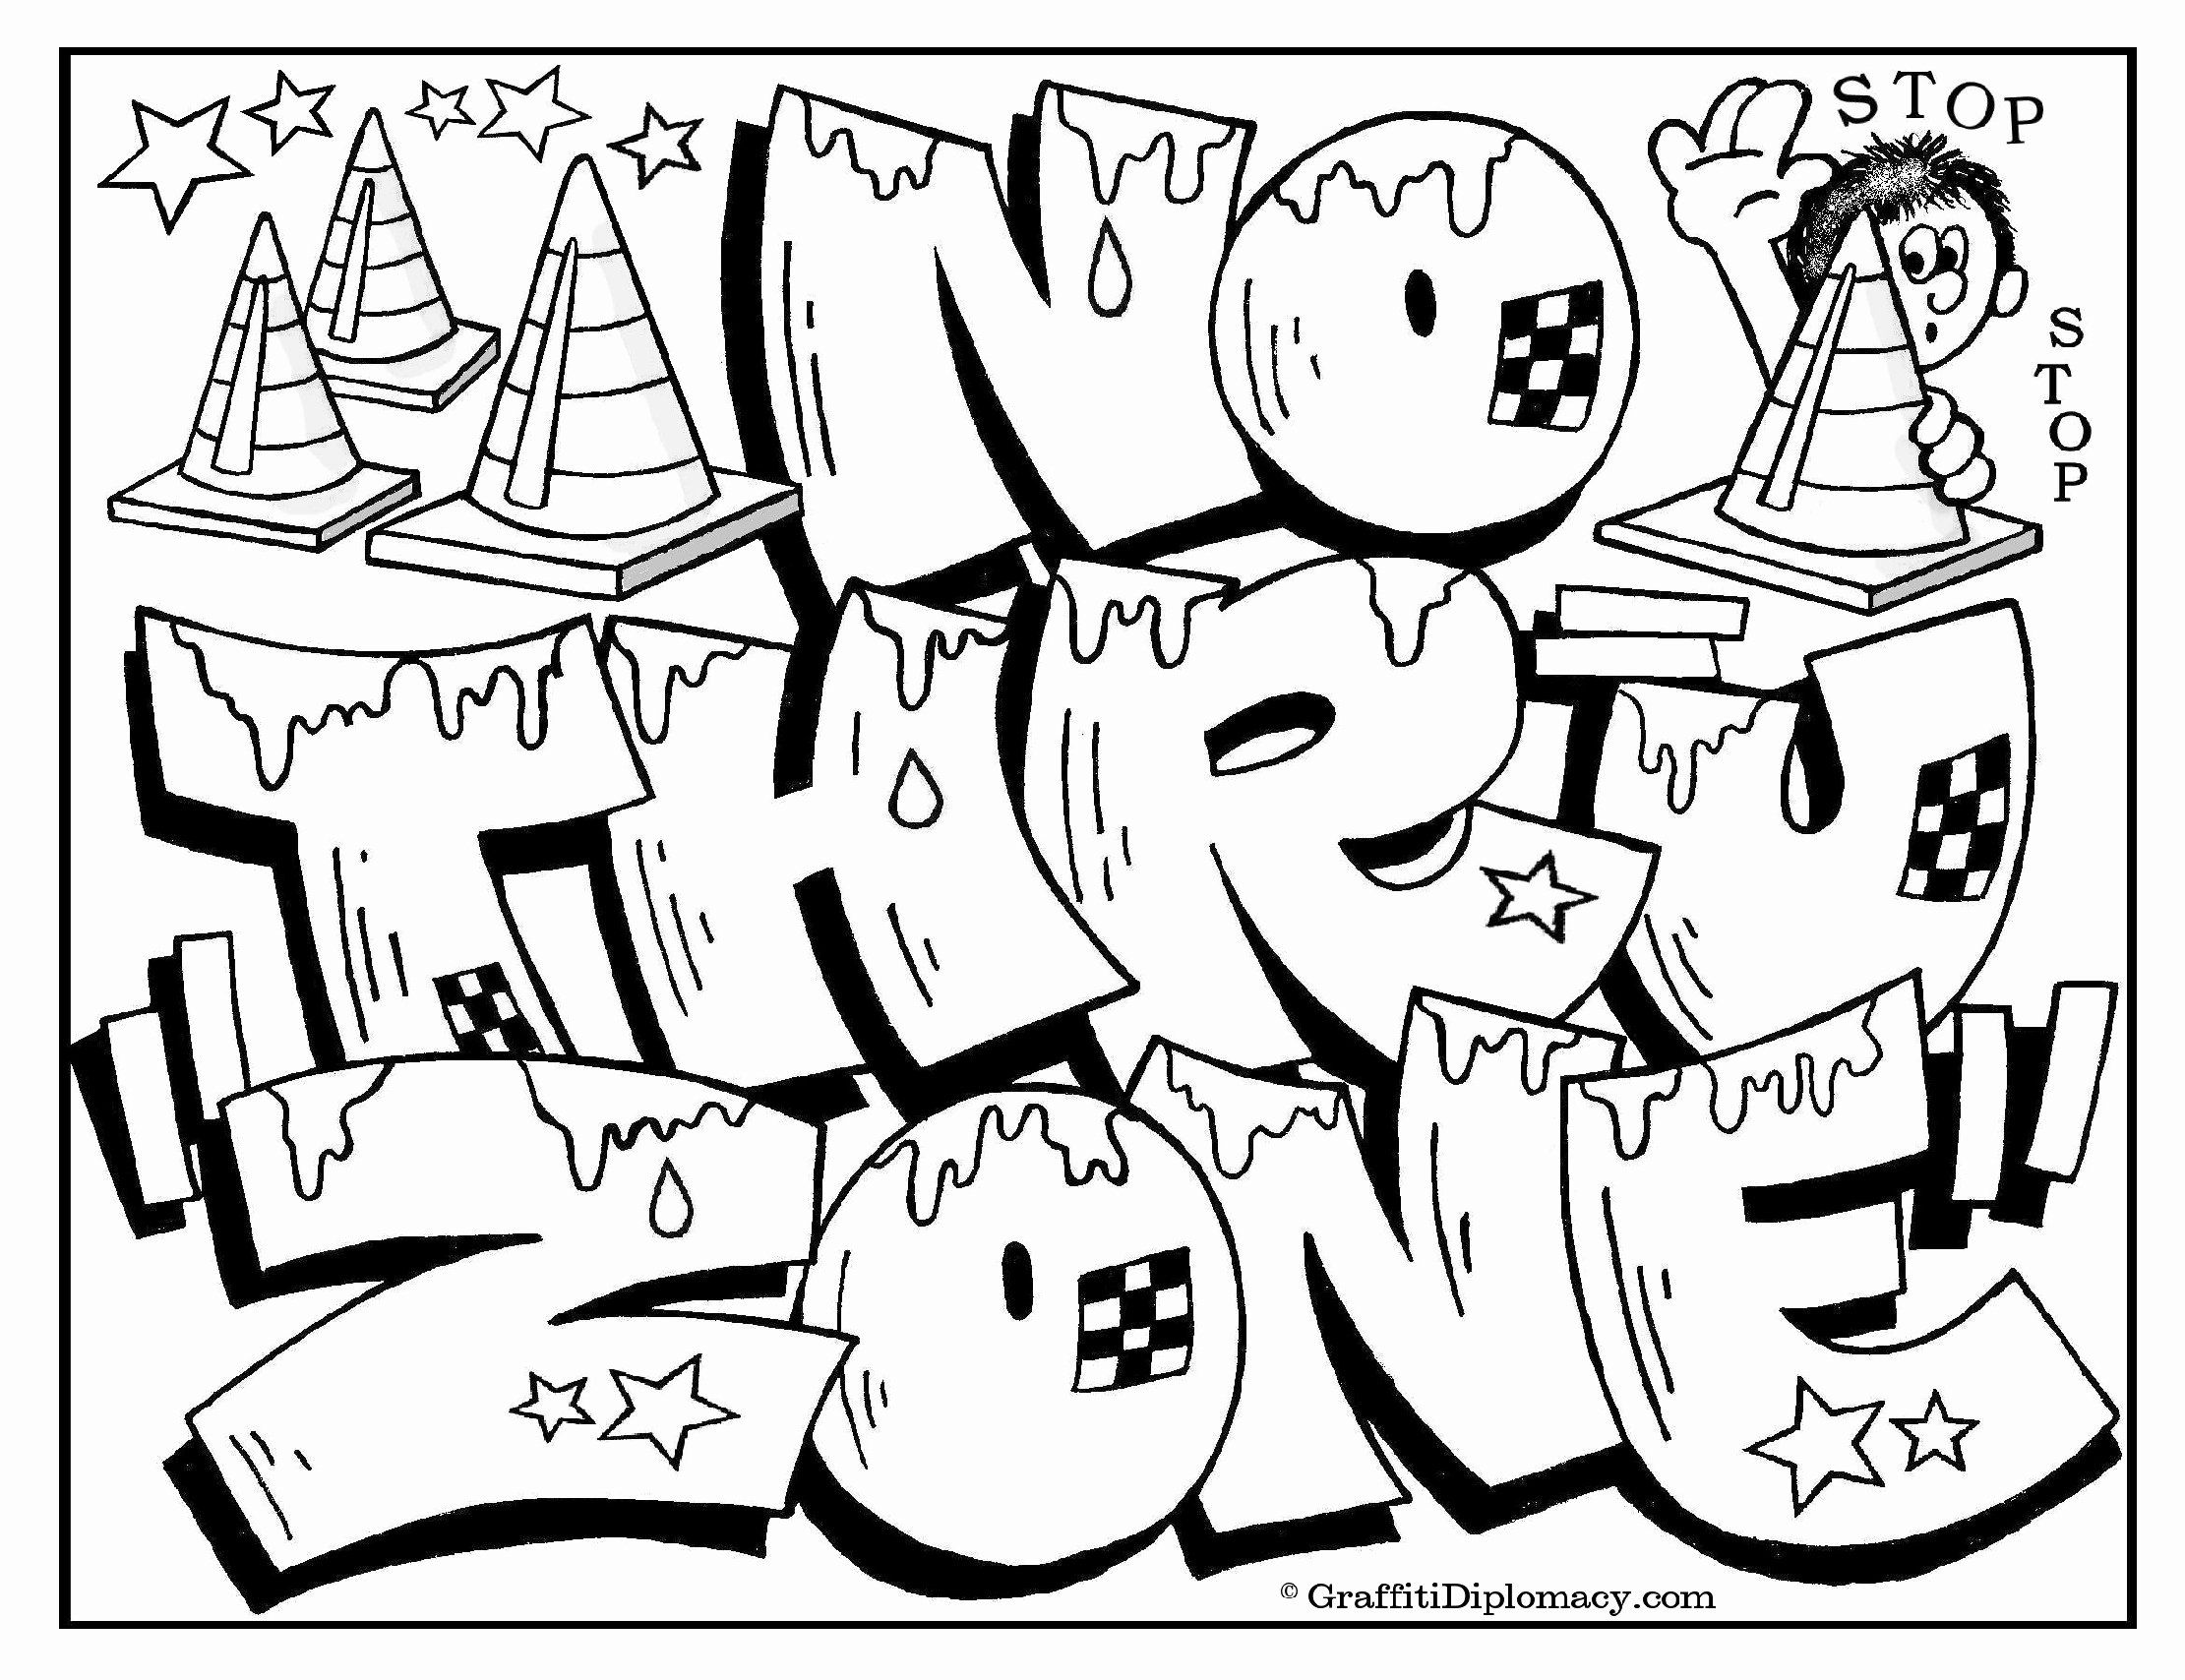 Printable Graffiti Coloring Pages Awesome Graffiti Coloring Pages At Getdrawings Graffiti Lettering Graffiti Drawing Graffiti